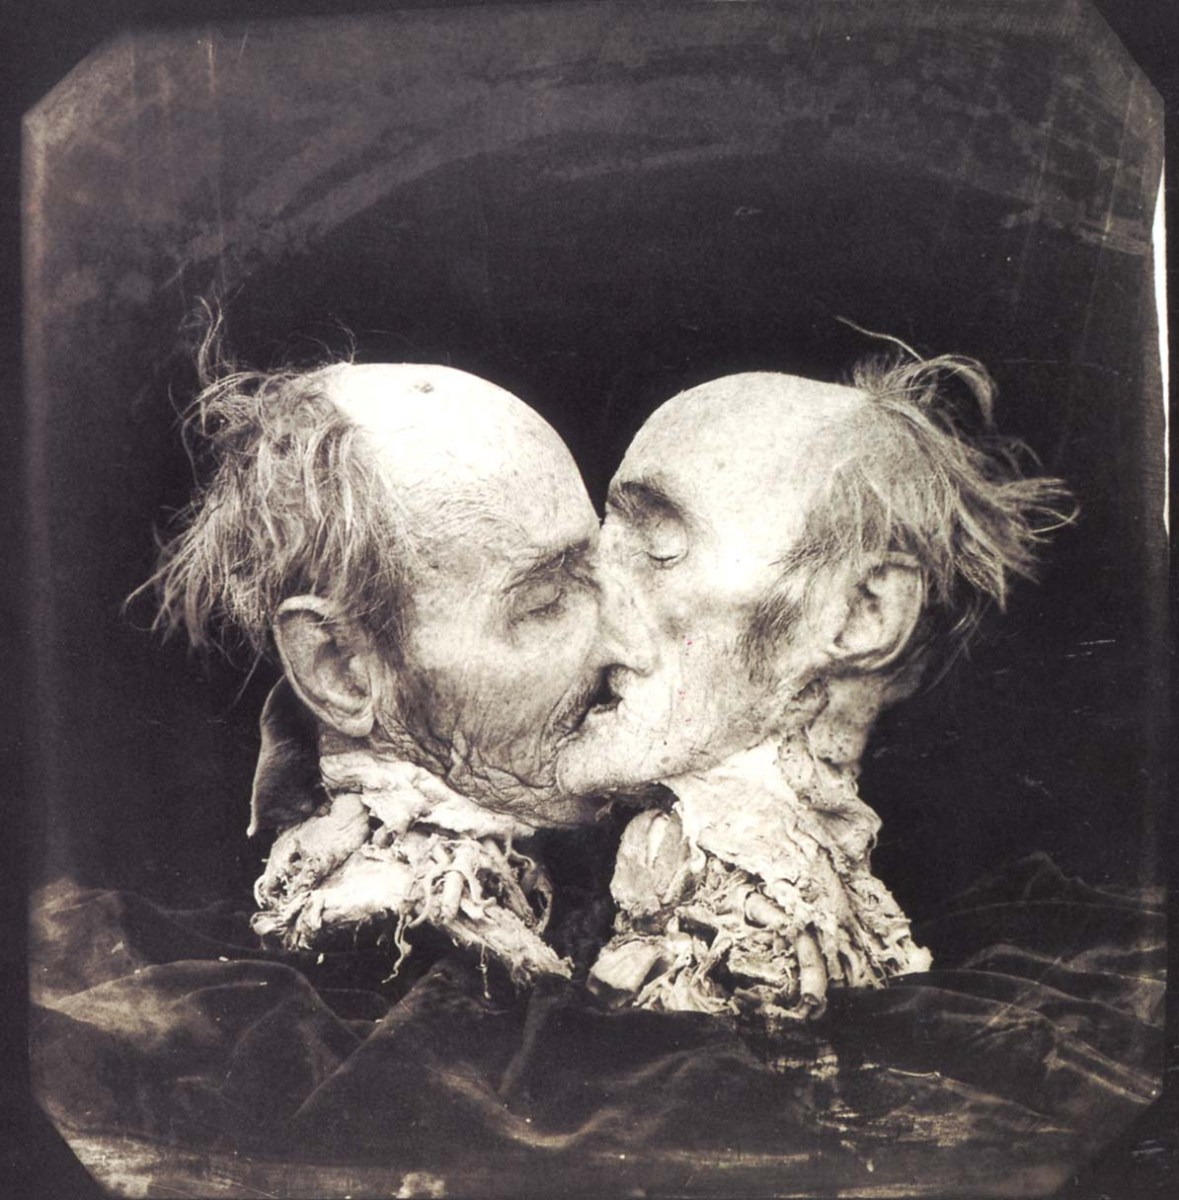 Joel-Peter Witkin - Le Baiser